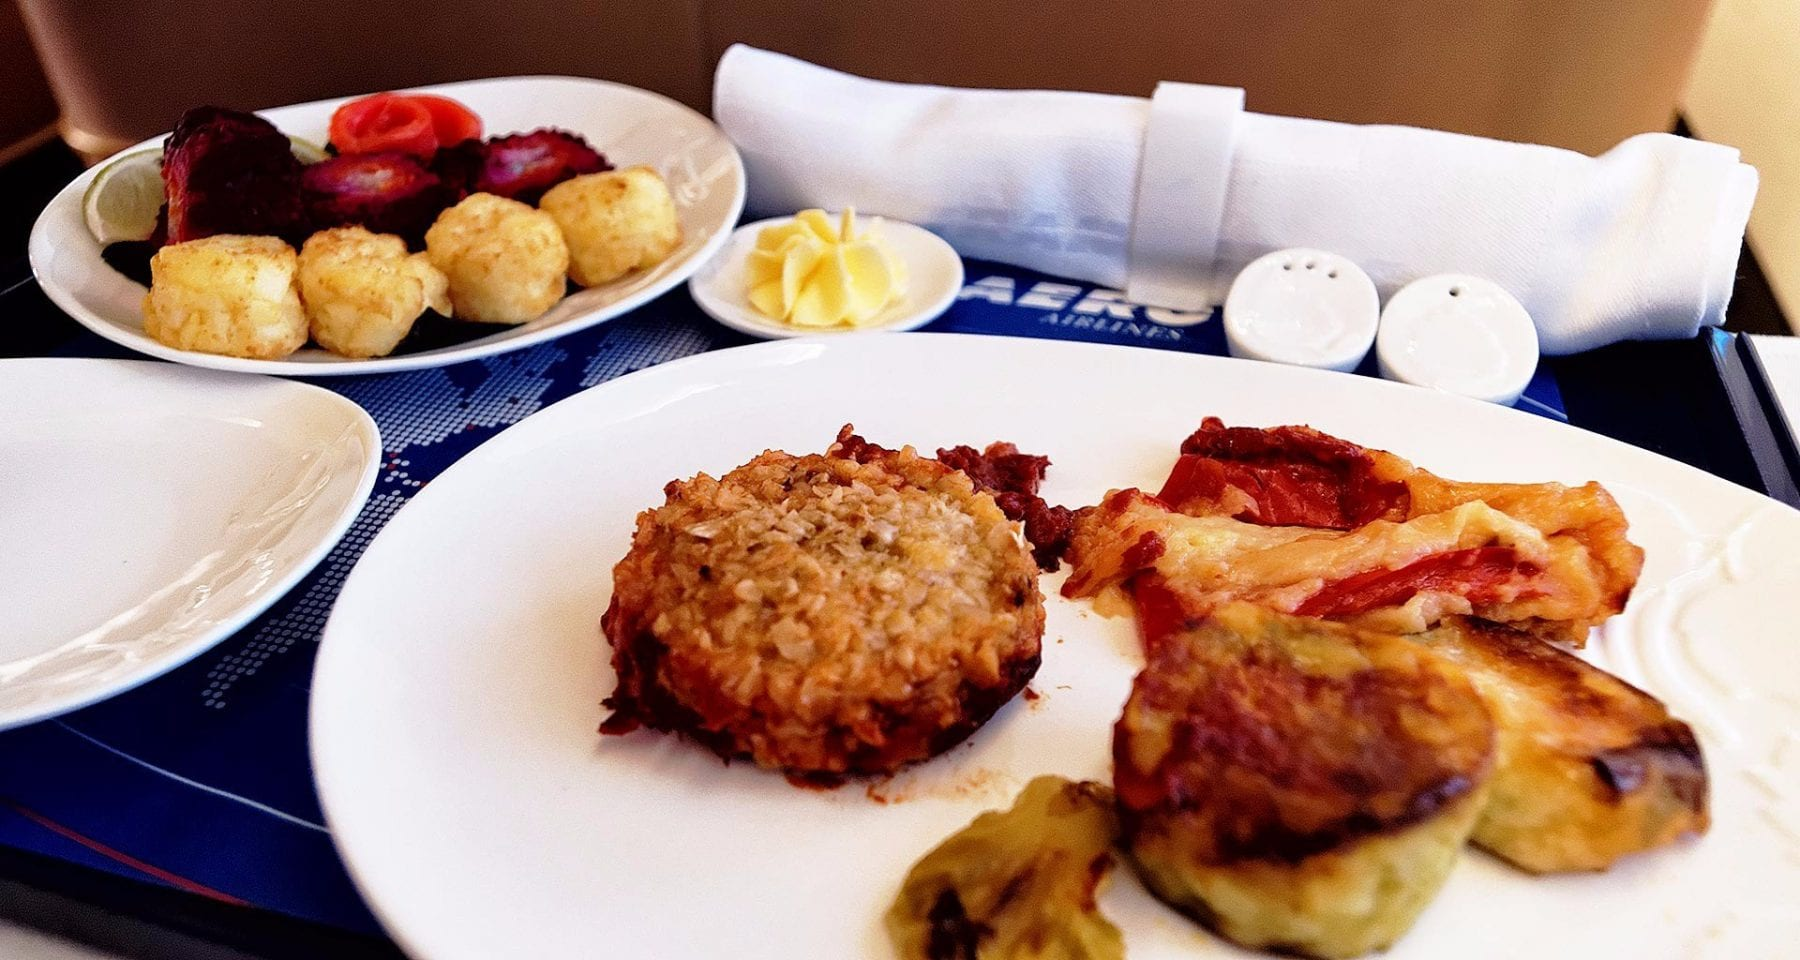 Transaero business class meal - rabbit pattie